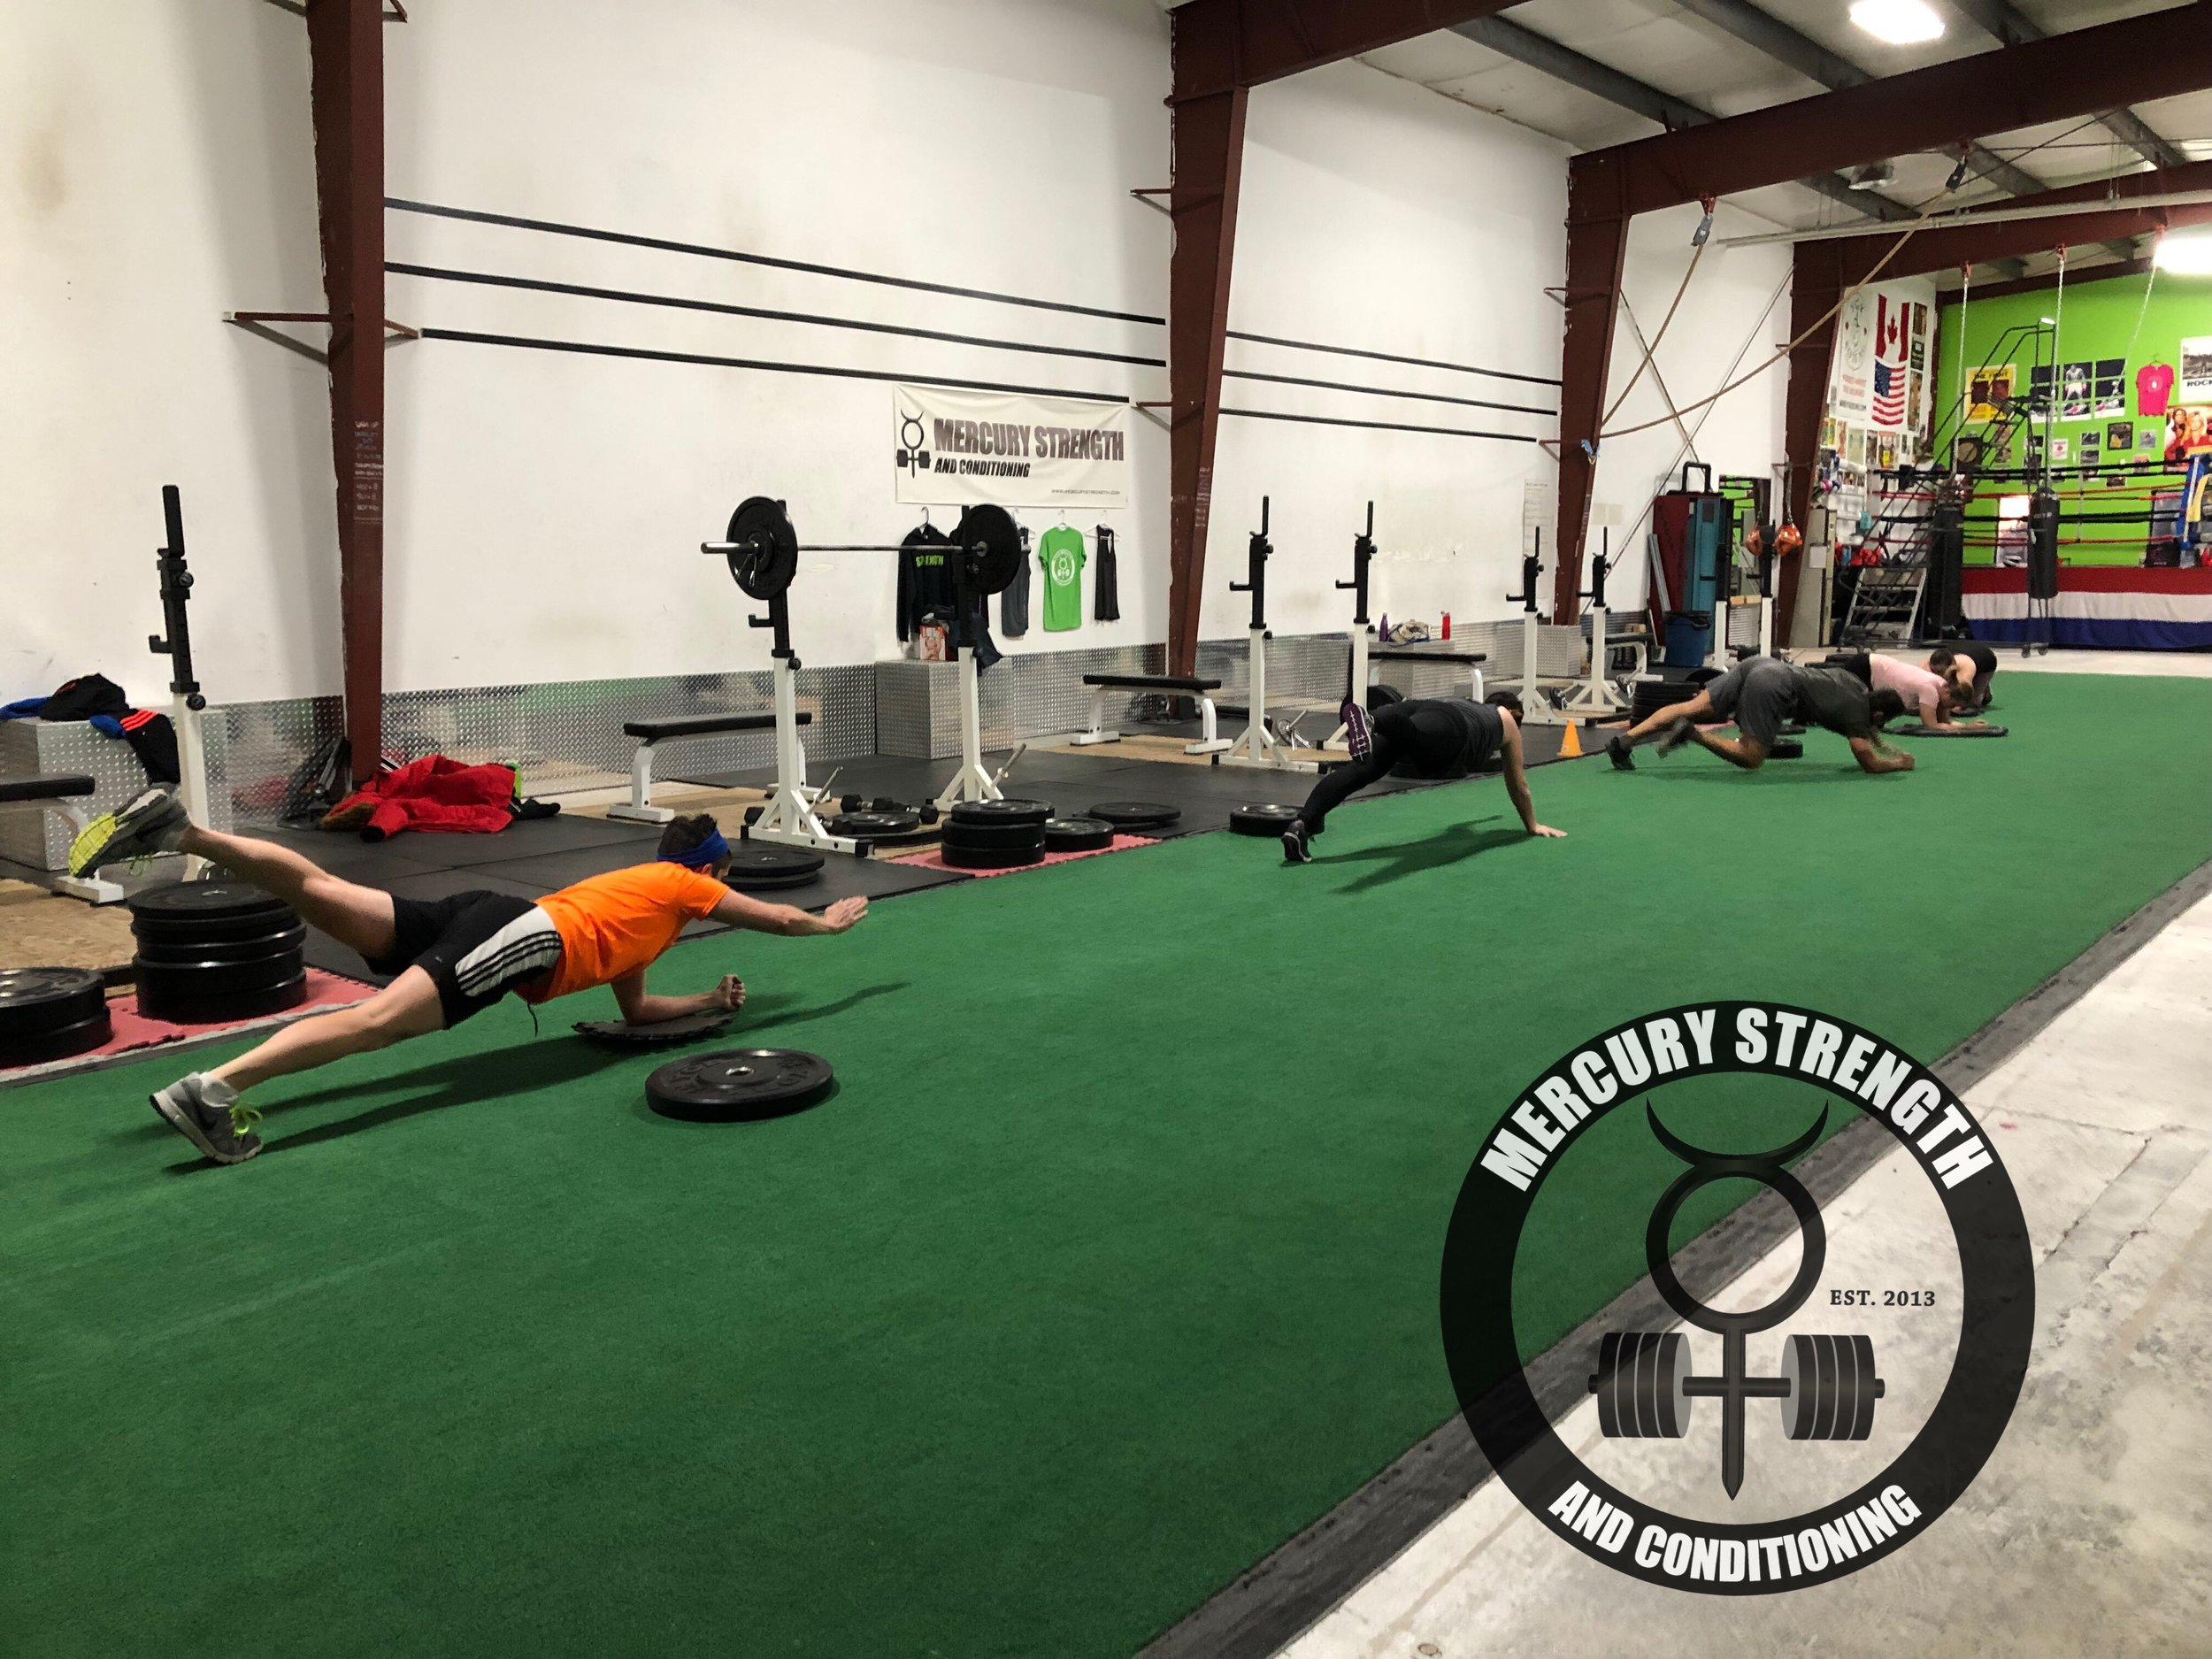 Working on core stability with some plank reach outs